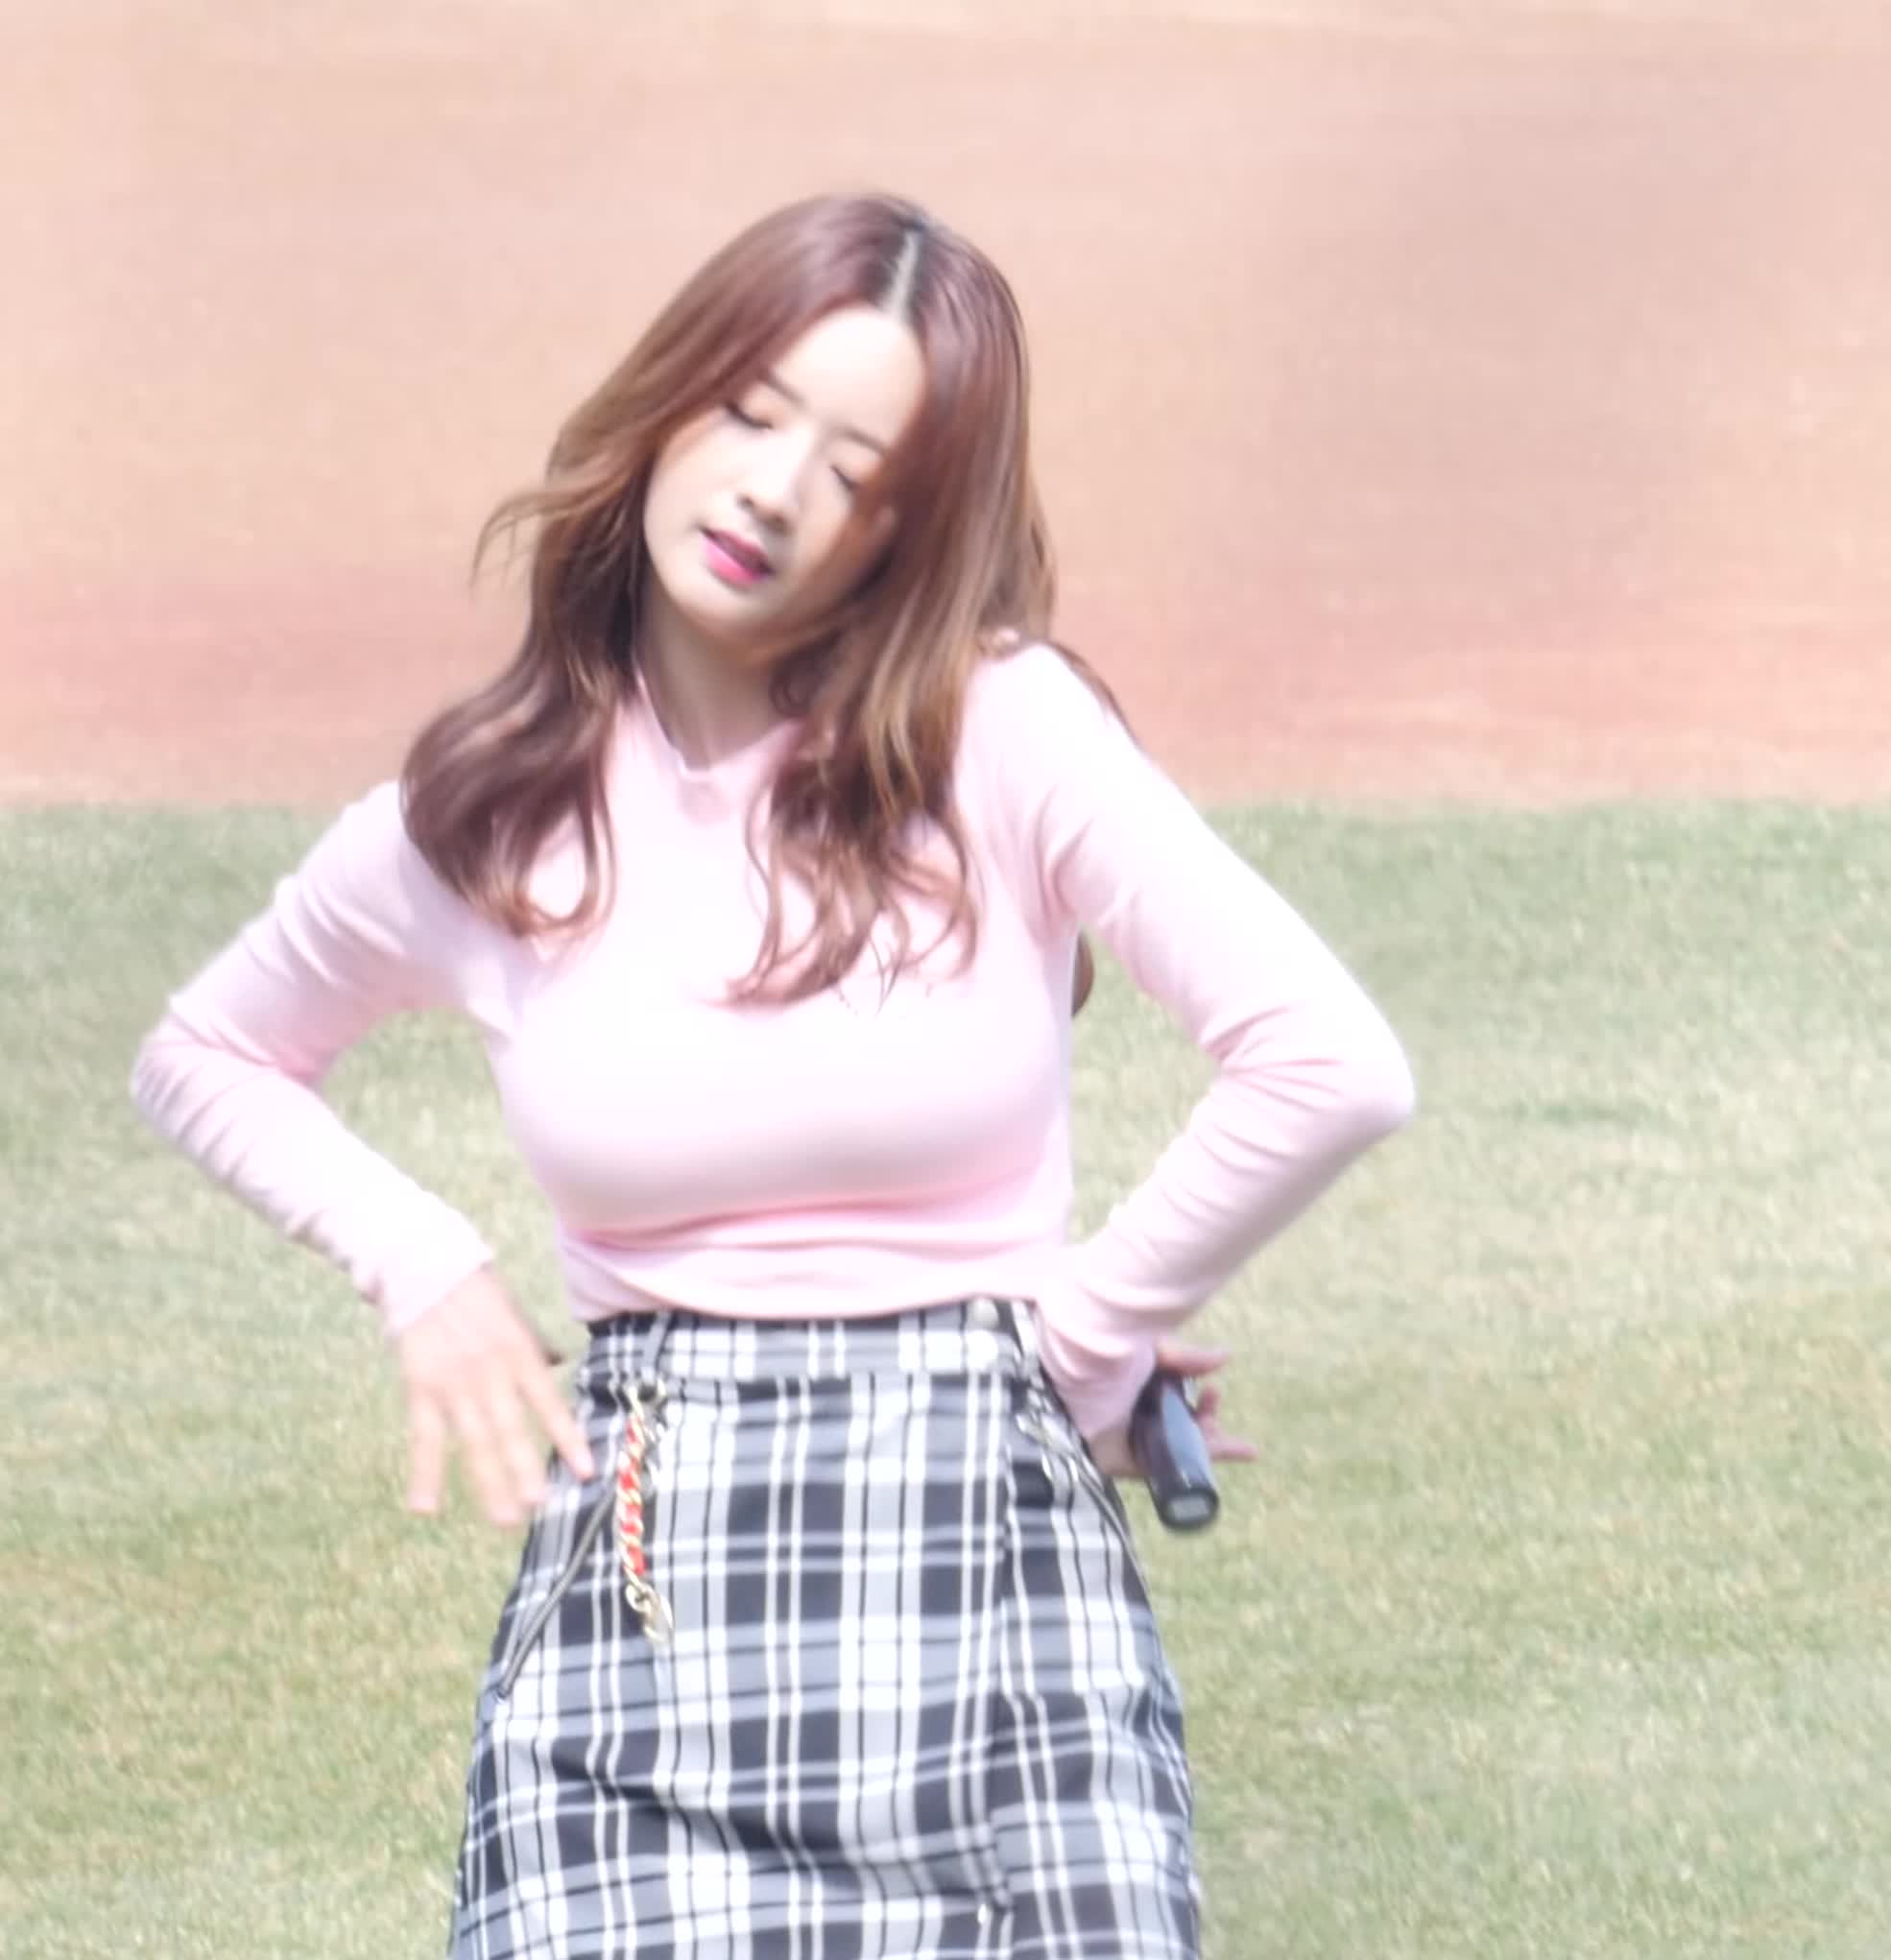 Apink Bomi A Little More Than A Little GIFs